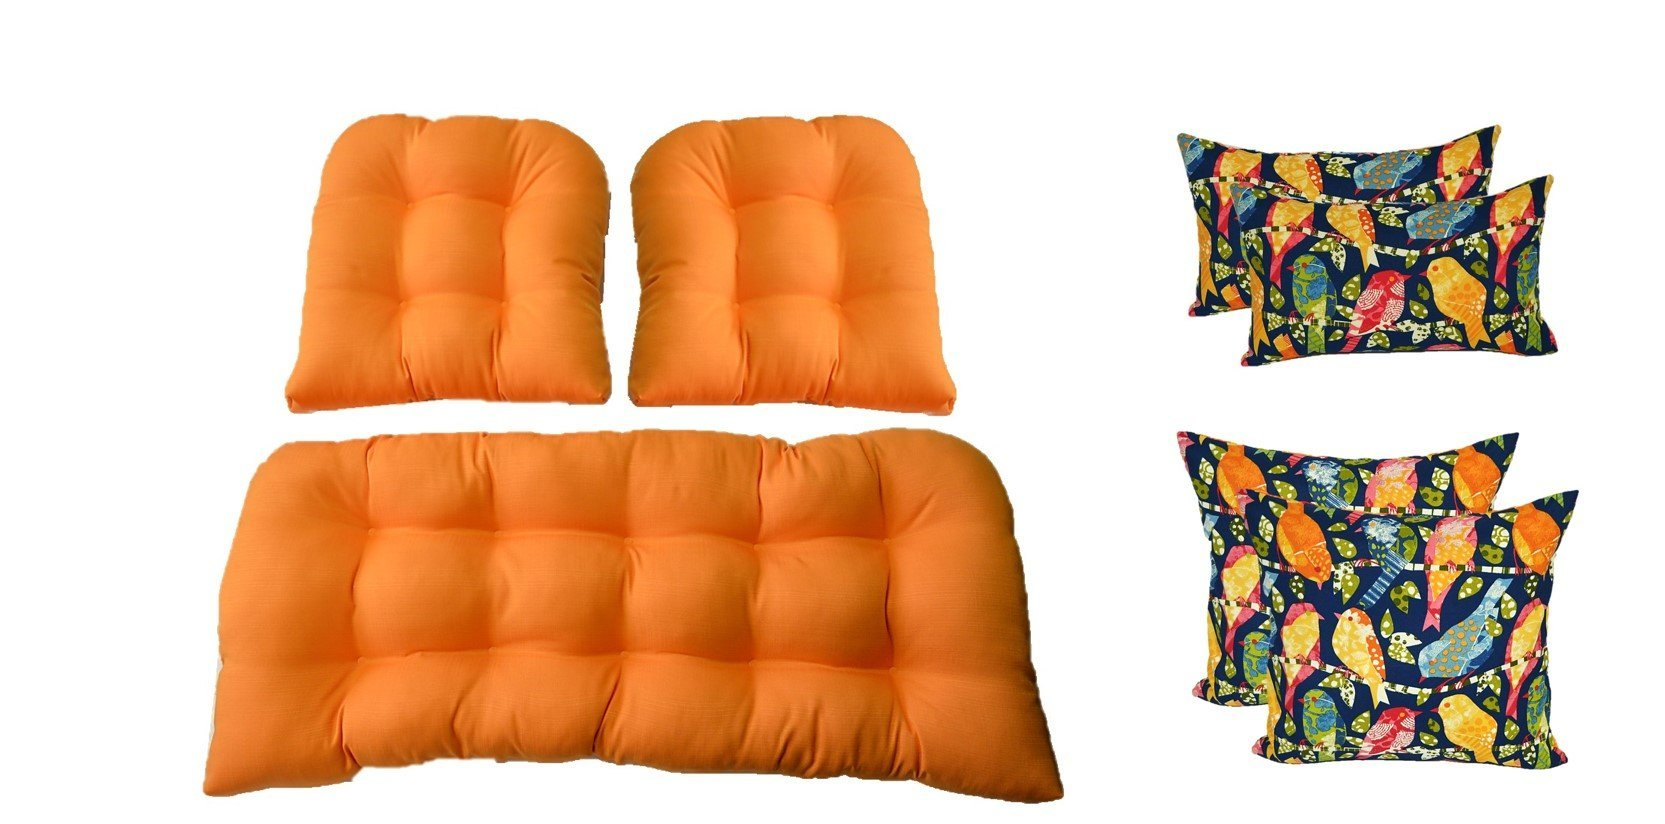 Wicker Cushions and Pillows 7 Pc Set - Woven Twill Mojo Creamsicle Orange Cushions and Blue Ash Hill Garden Birds Pillows - Indoor / Outdoor Fabric